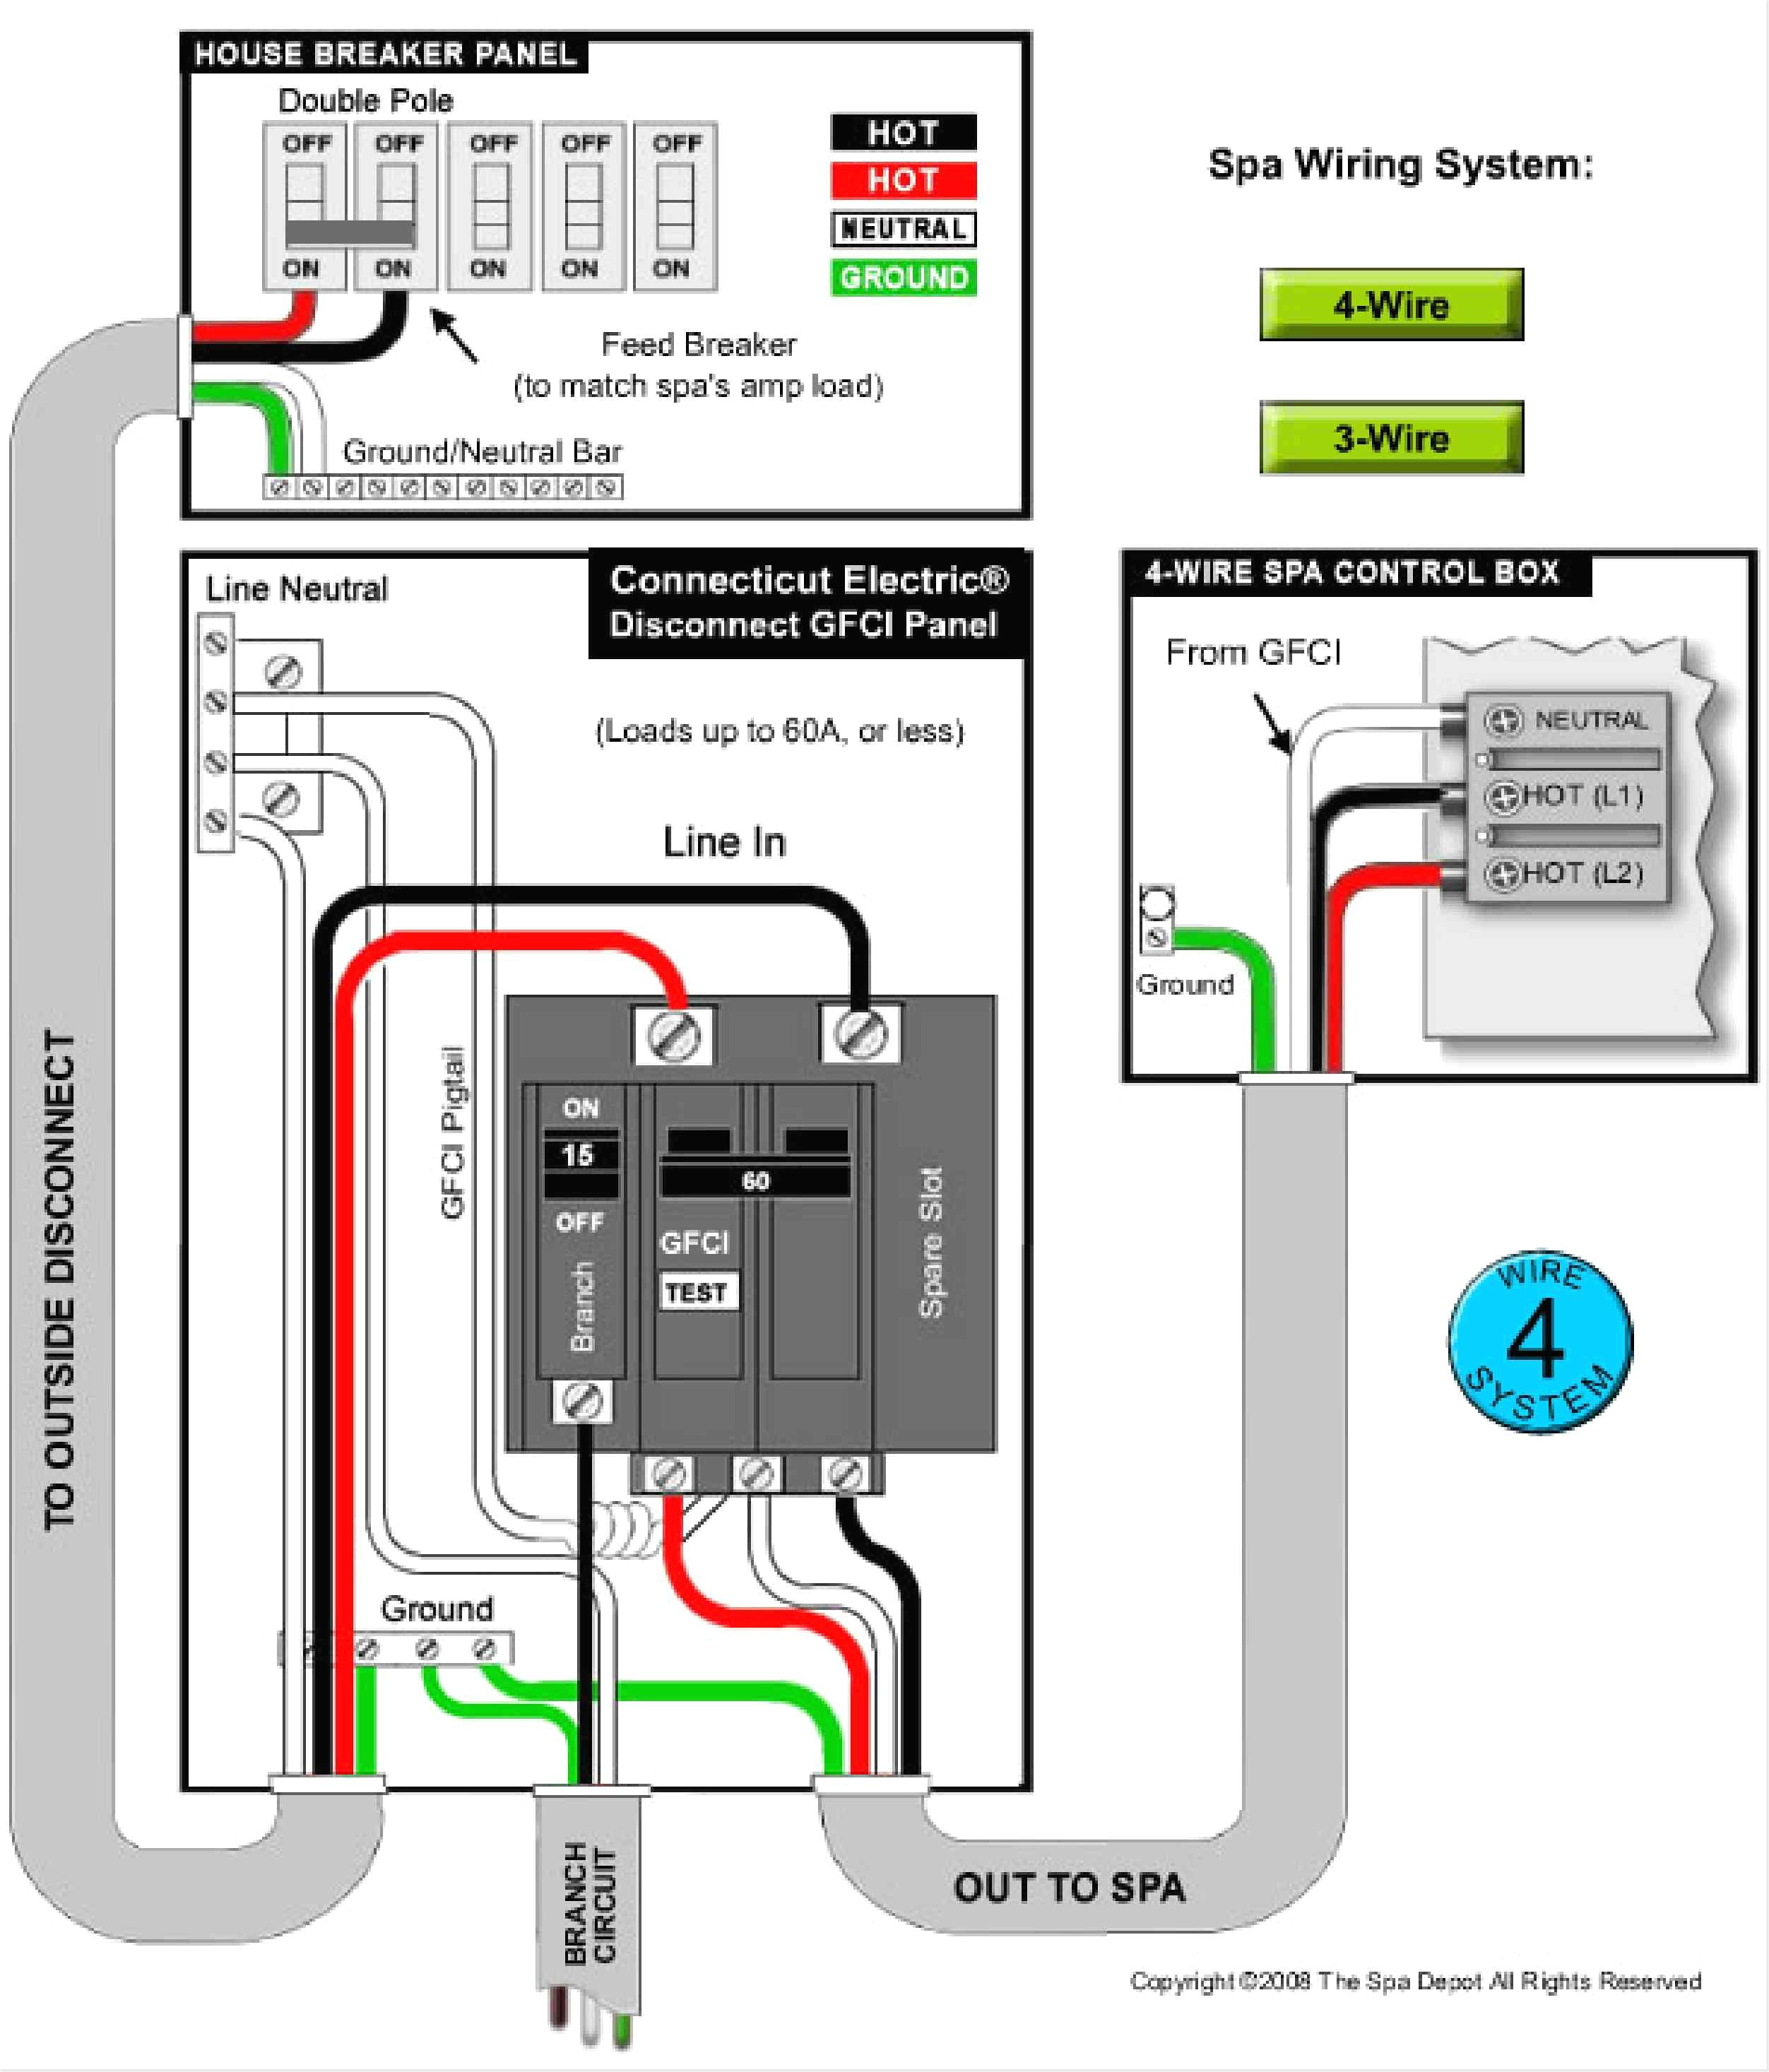 220 Wiring Diagram Box | Wiring Diagrams on 240 volt gfci breaker diagram, 220 meter box diagram, 220v circuit diagram, 220 volt diagram, 50 amp outlet diagram, breaker box diagram,